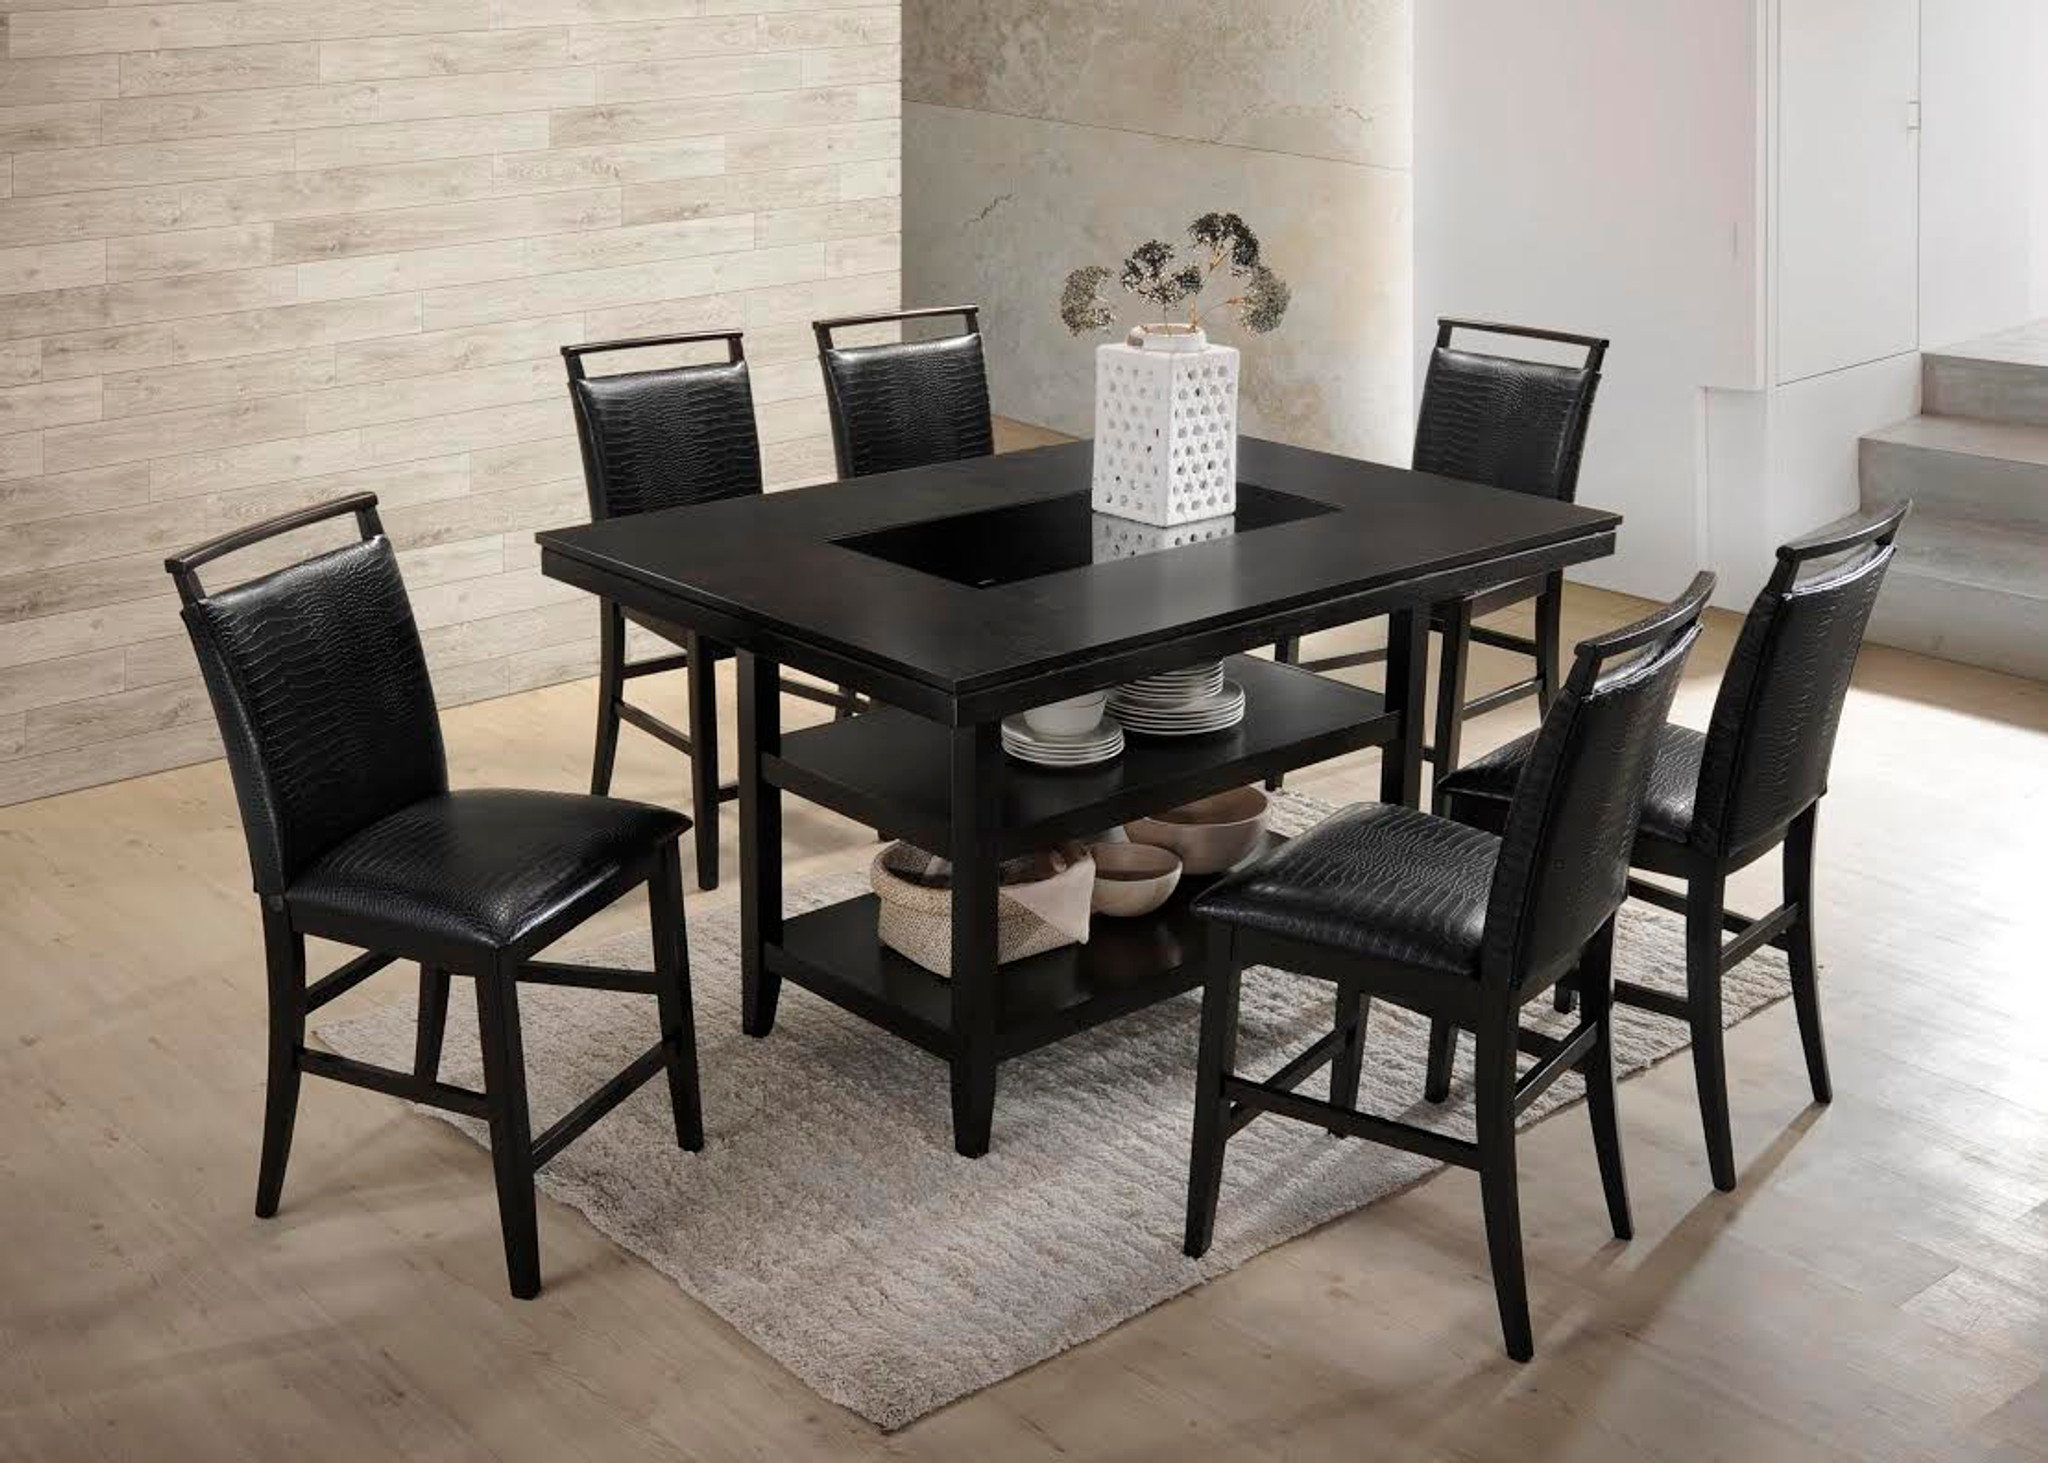 7PCS BLACK COUNTER HEIGHT DINING TABLE SET- BLACK CROCODILE UPHOLSTERY